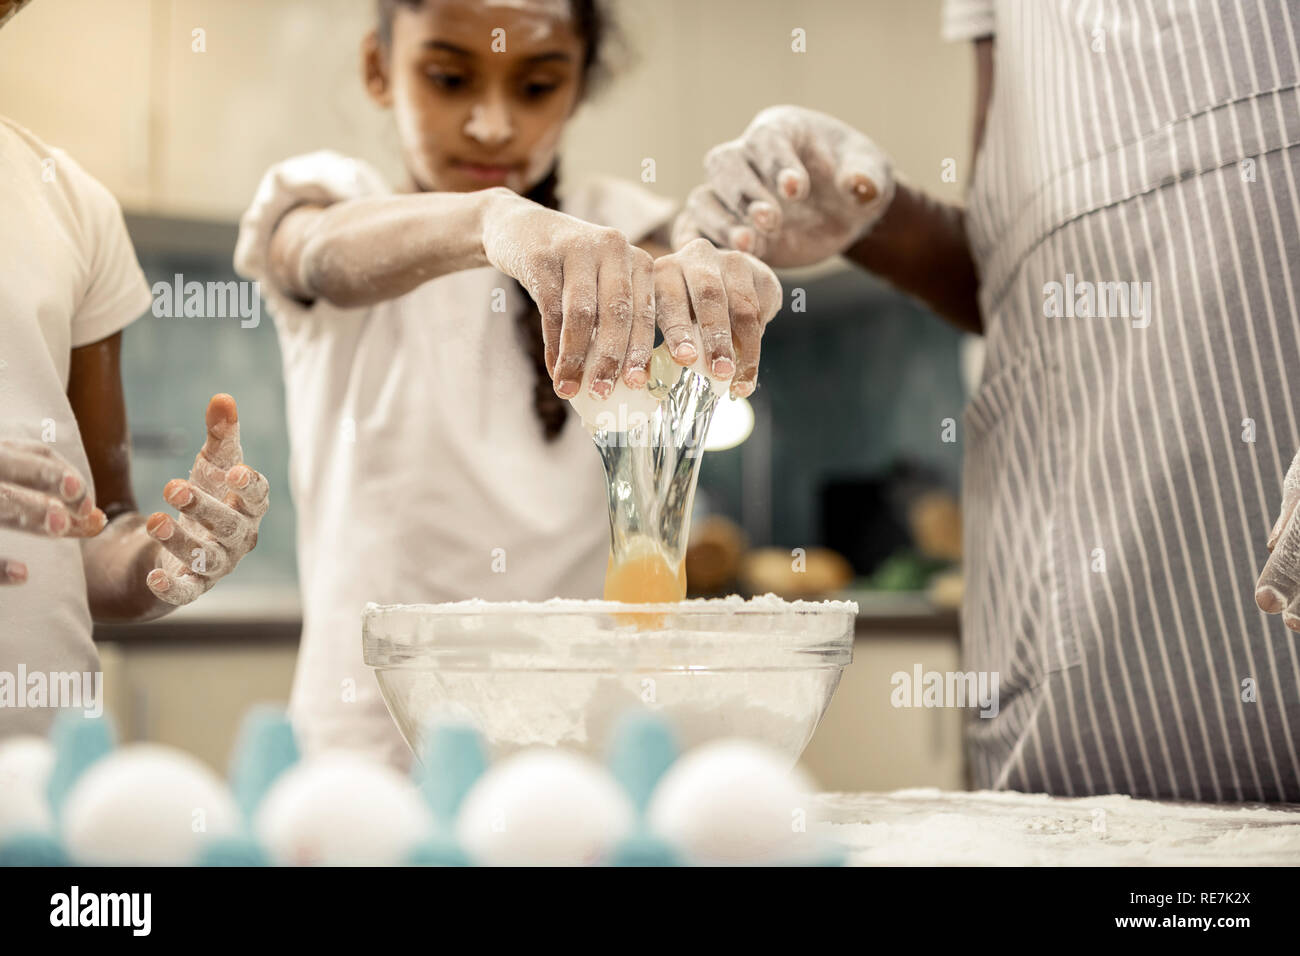 Cute dark-haired daughter beating egg cooking with father - Stock Image